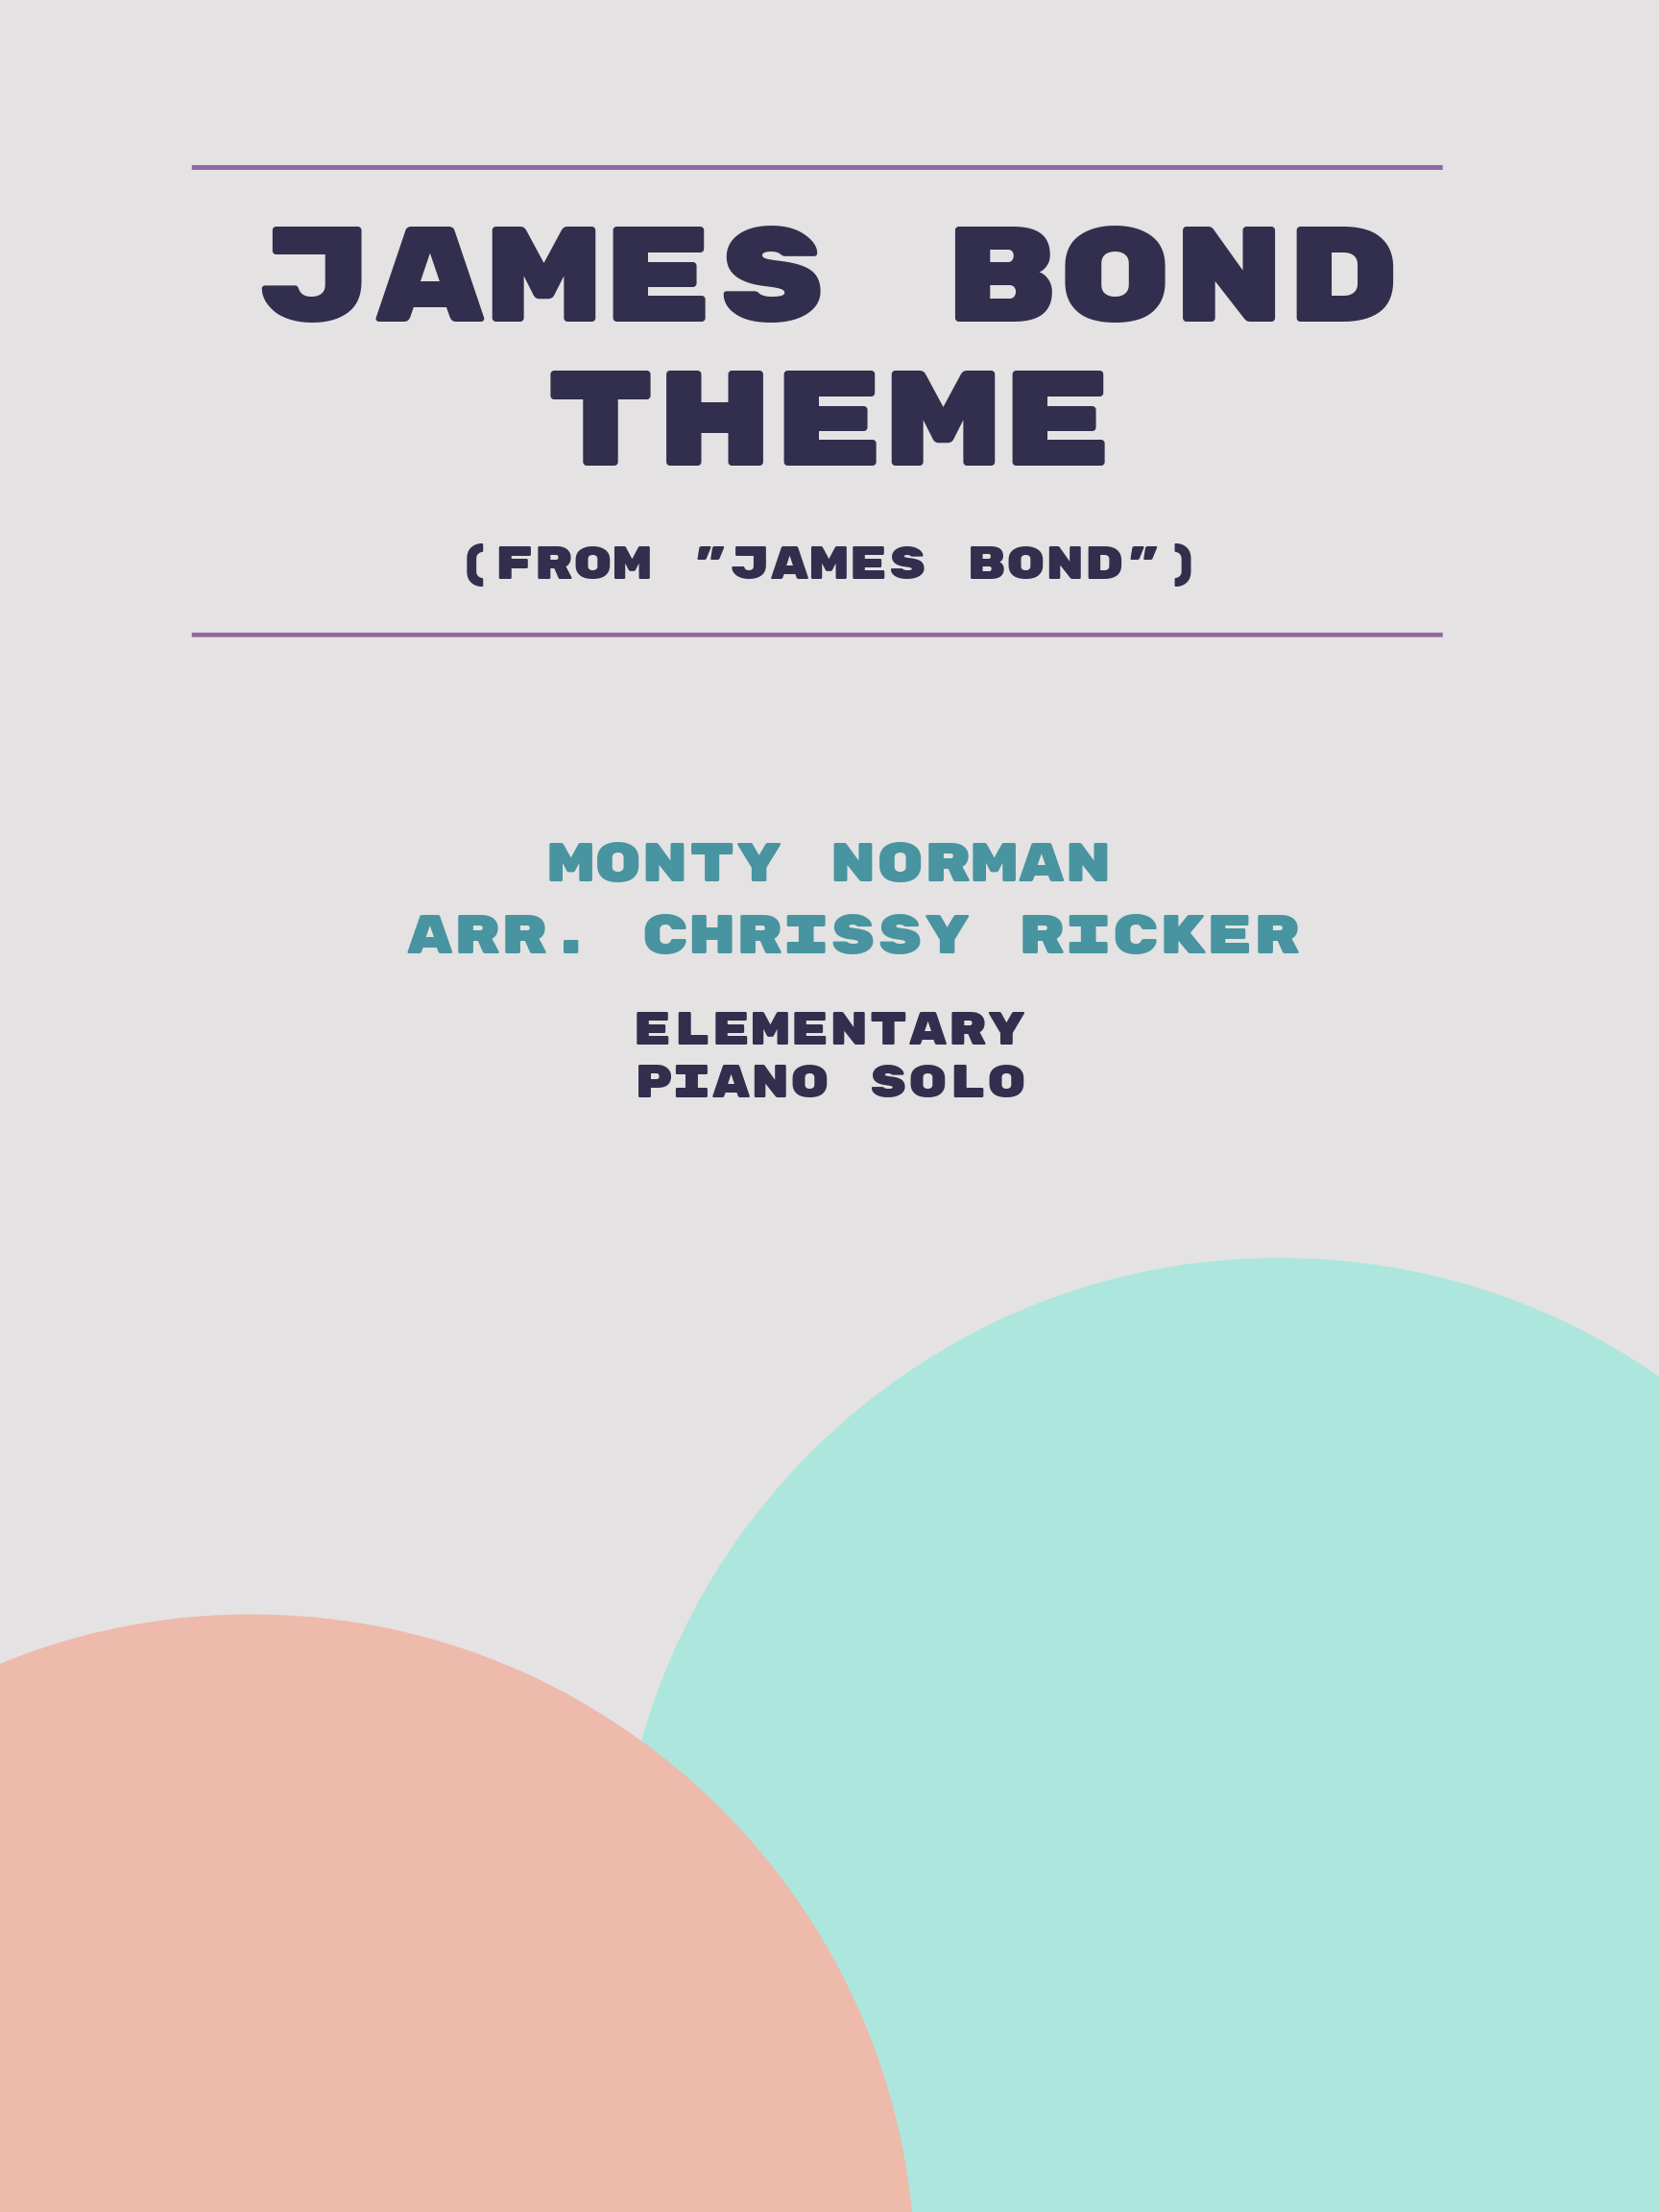 James Bond Theme Sample Page